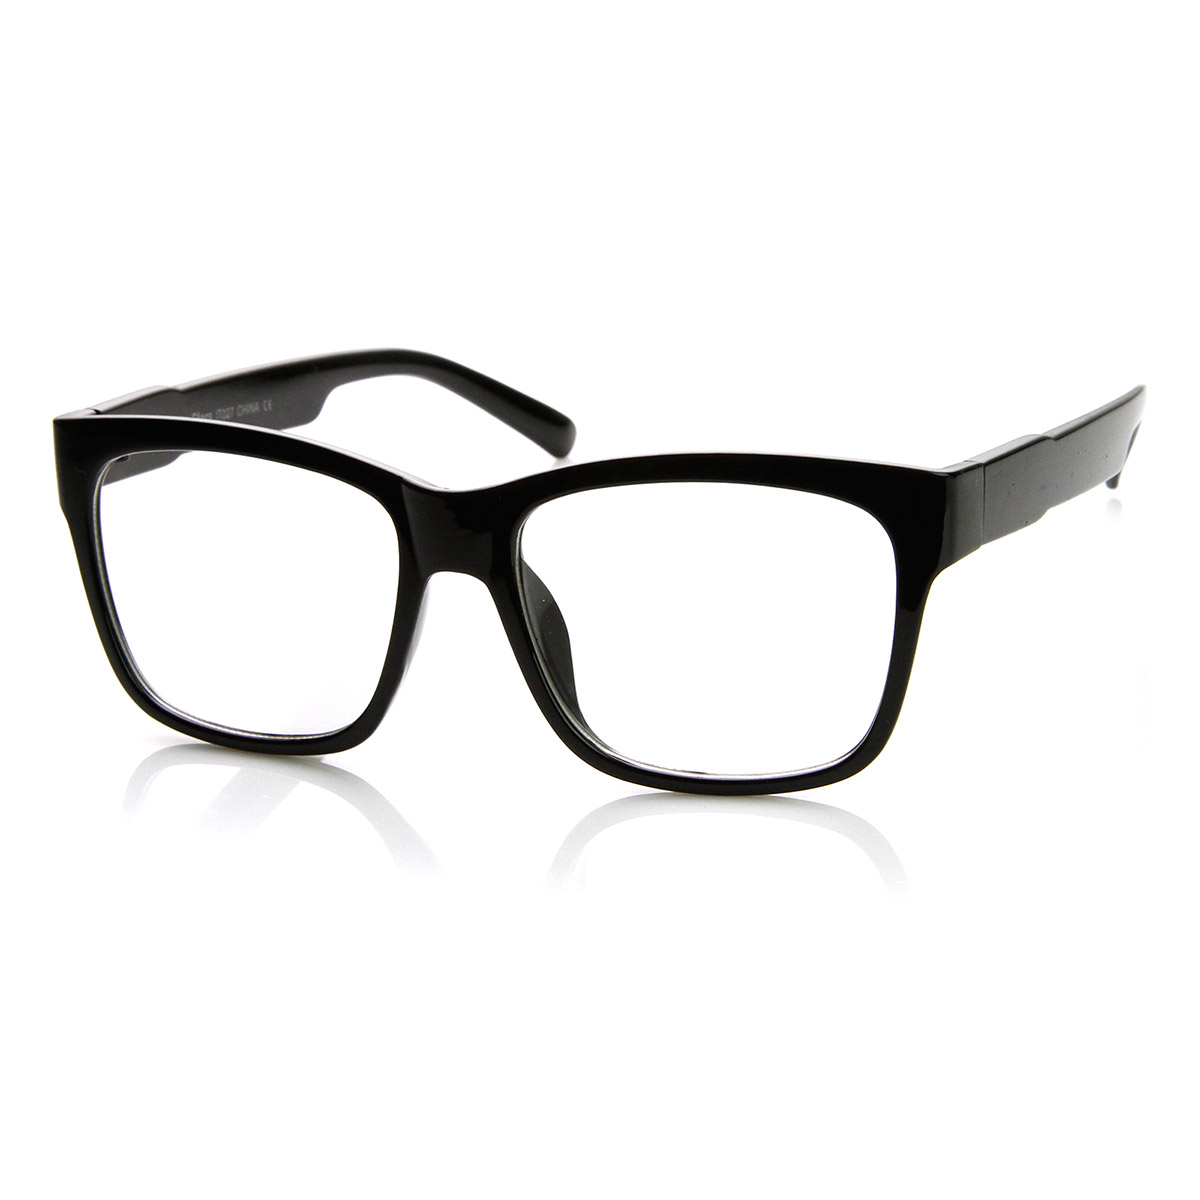 Big Thick Frame Glasses : Casual Bold Thick Square Frame Clear Lens Horn Rimmed ...